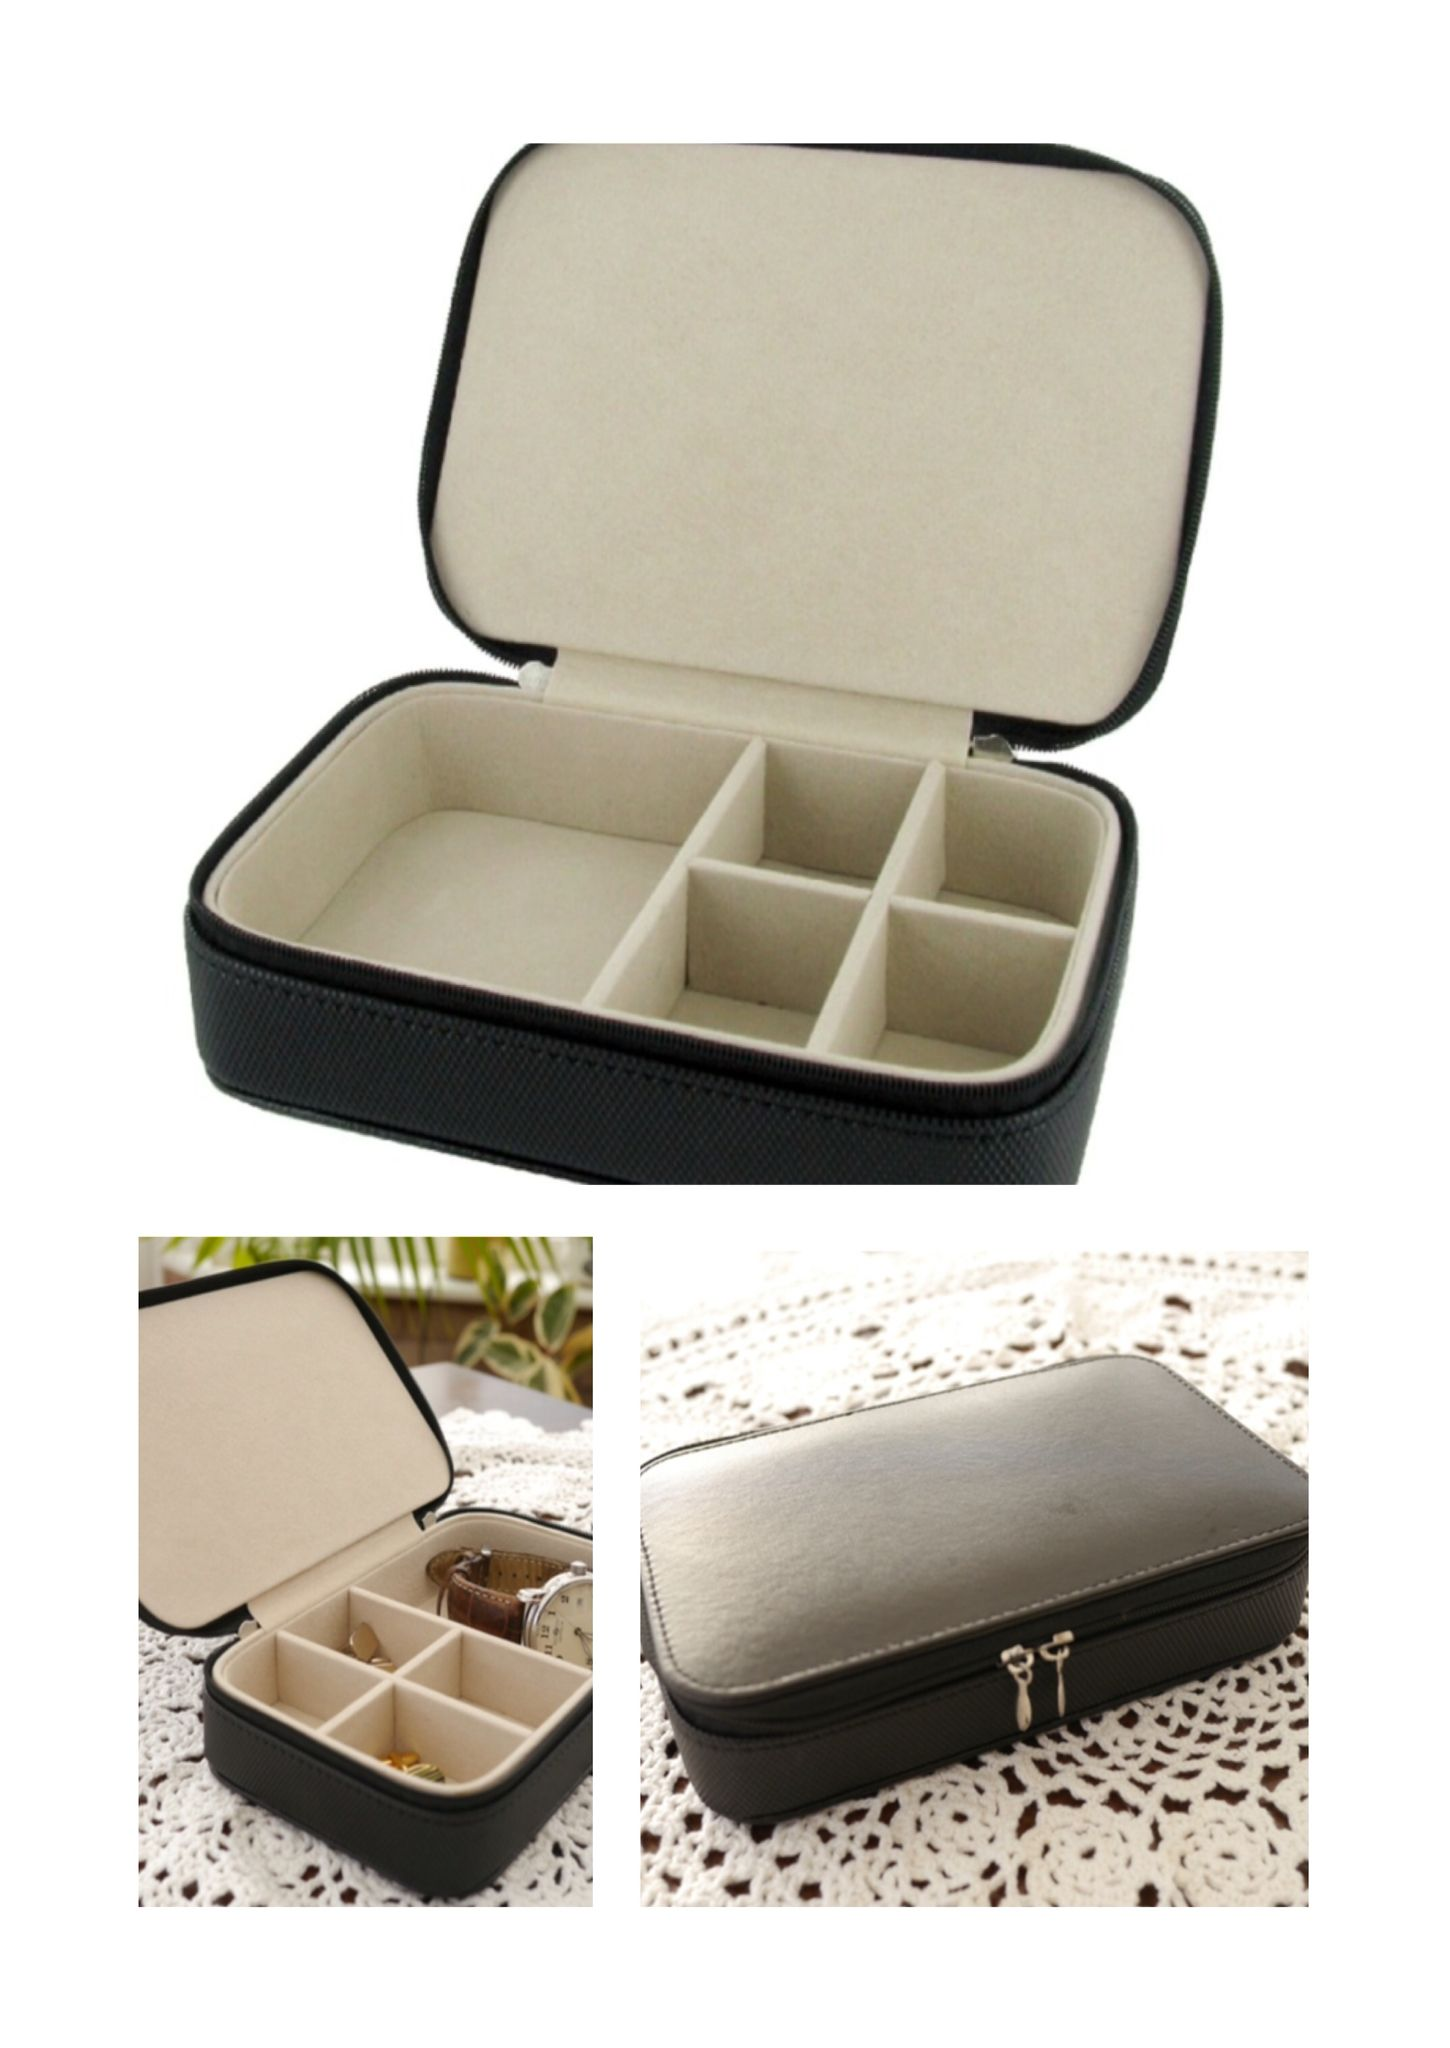 A Lovely Leather Travel Jewellery Box Complete With Fabric Lining